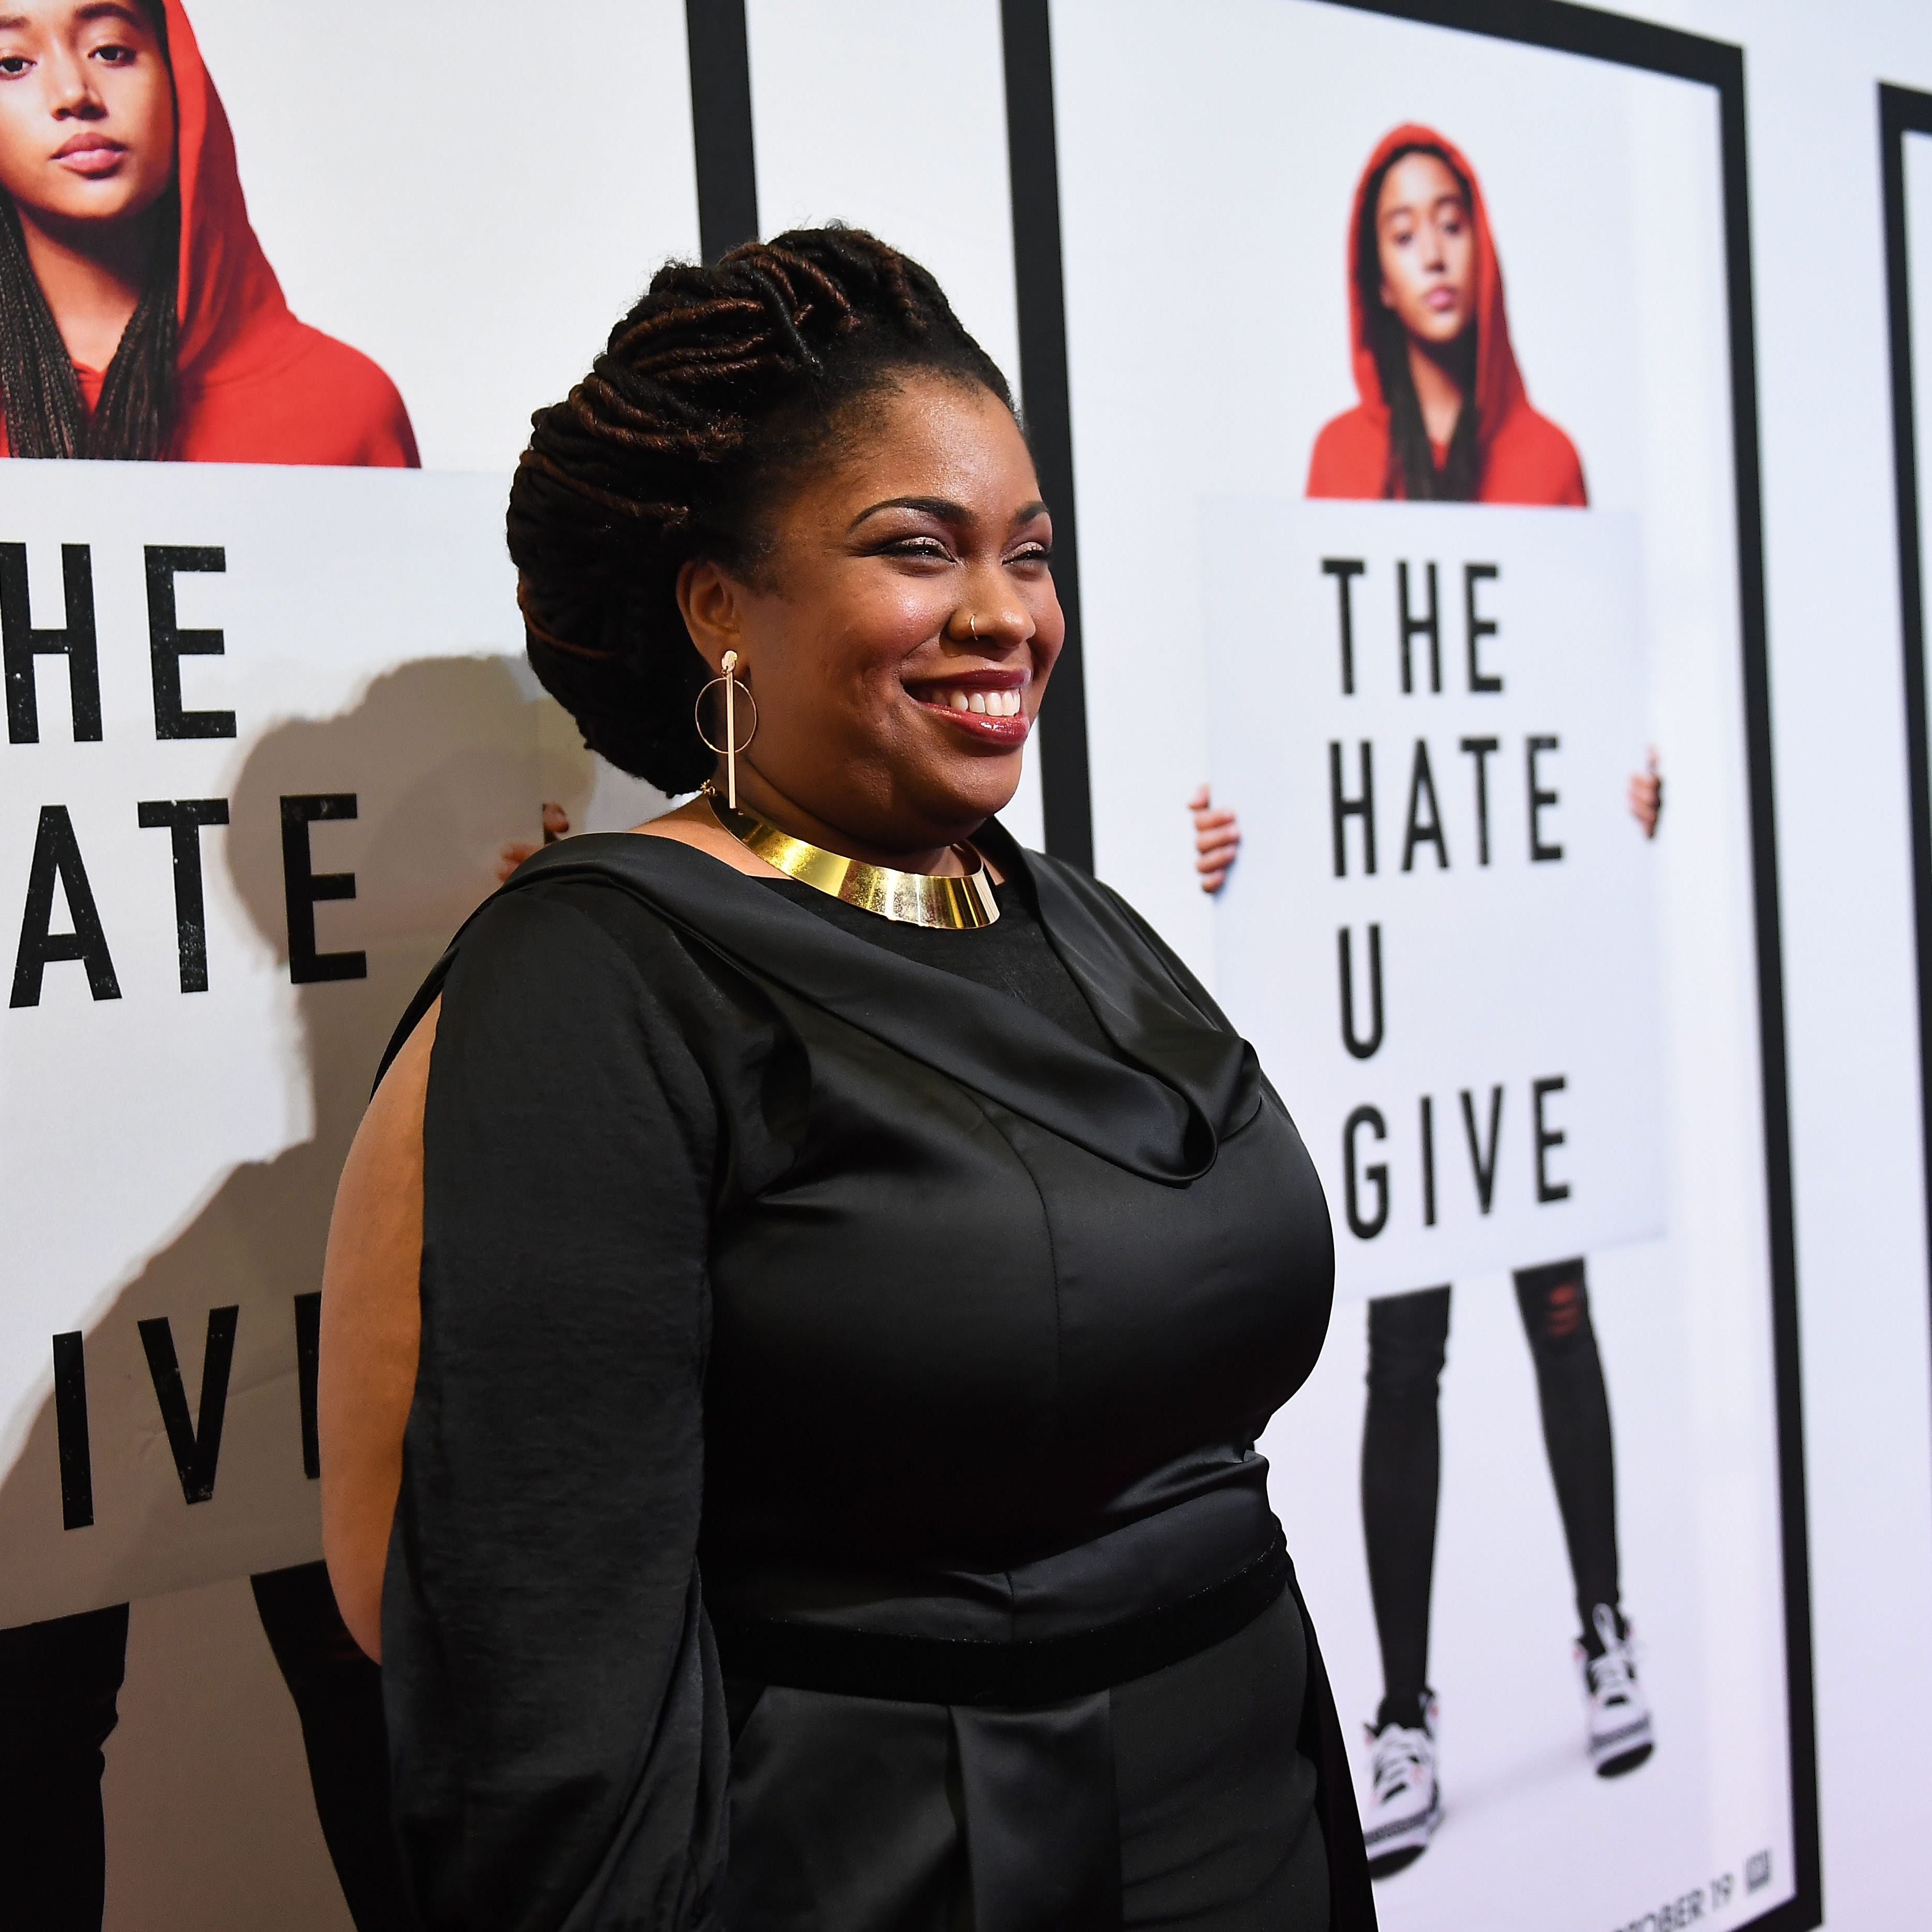 'I want to be something good from here': 'The Hate U Give' author proud to call Mississippi home